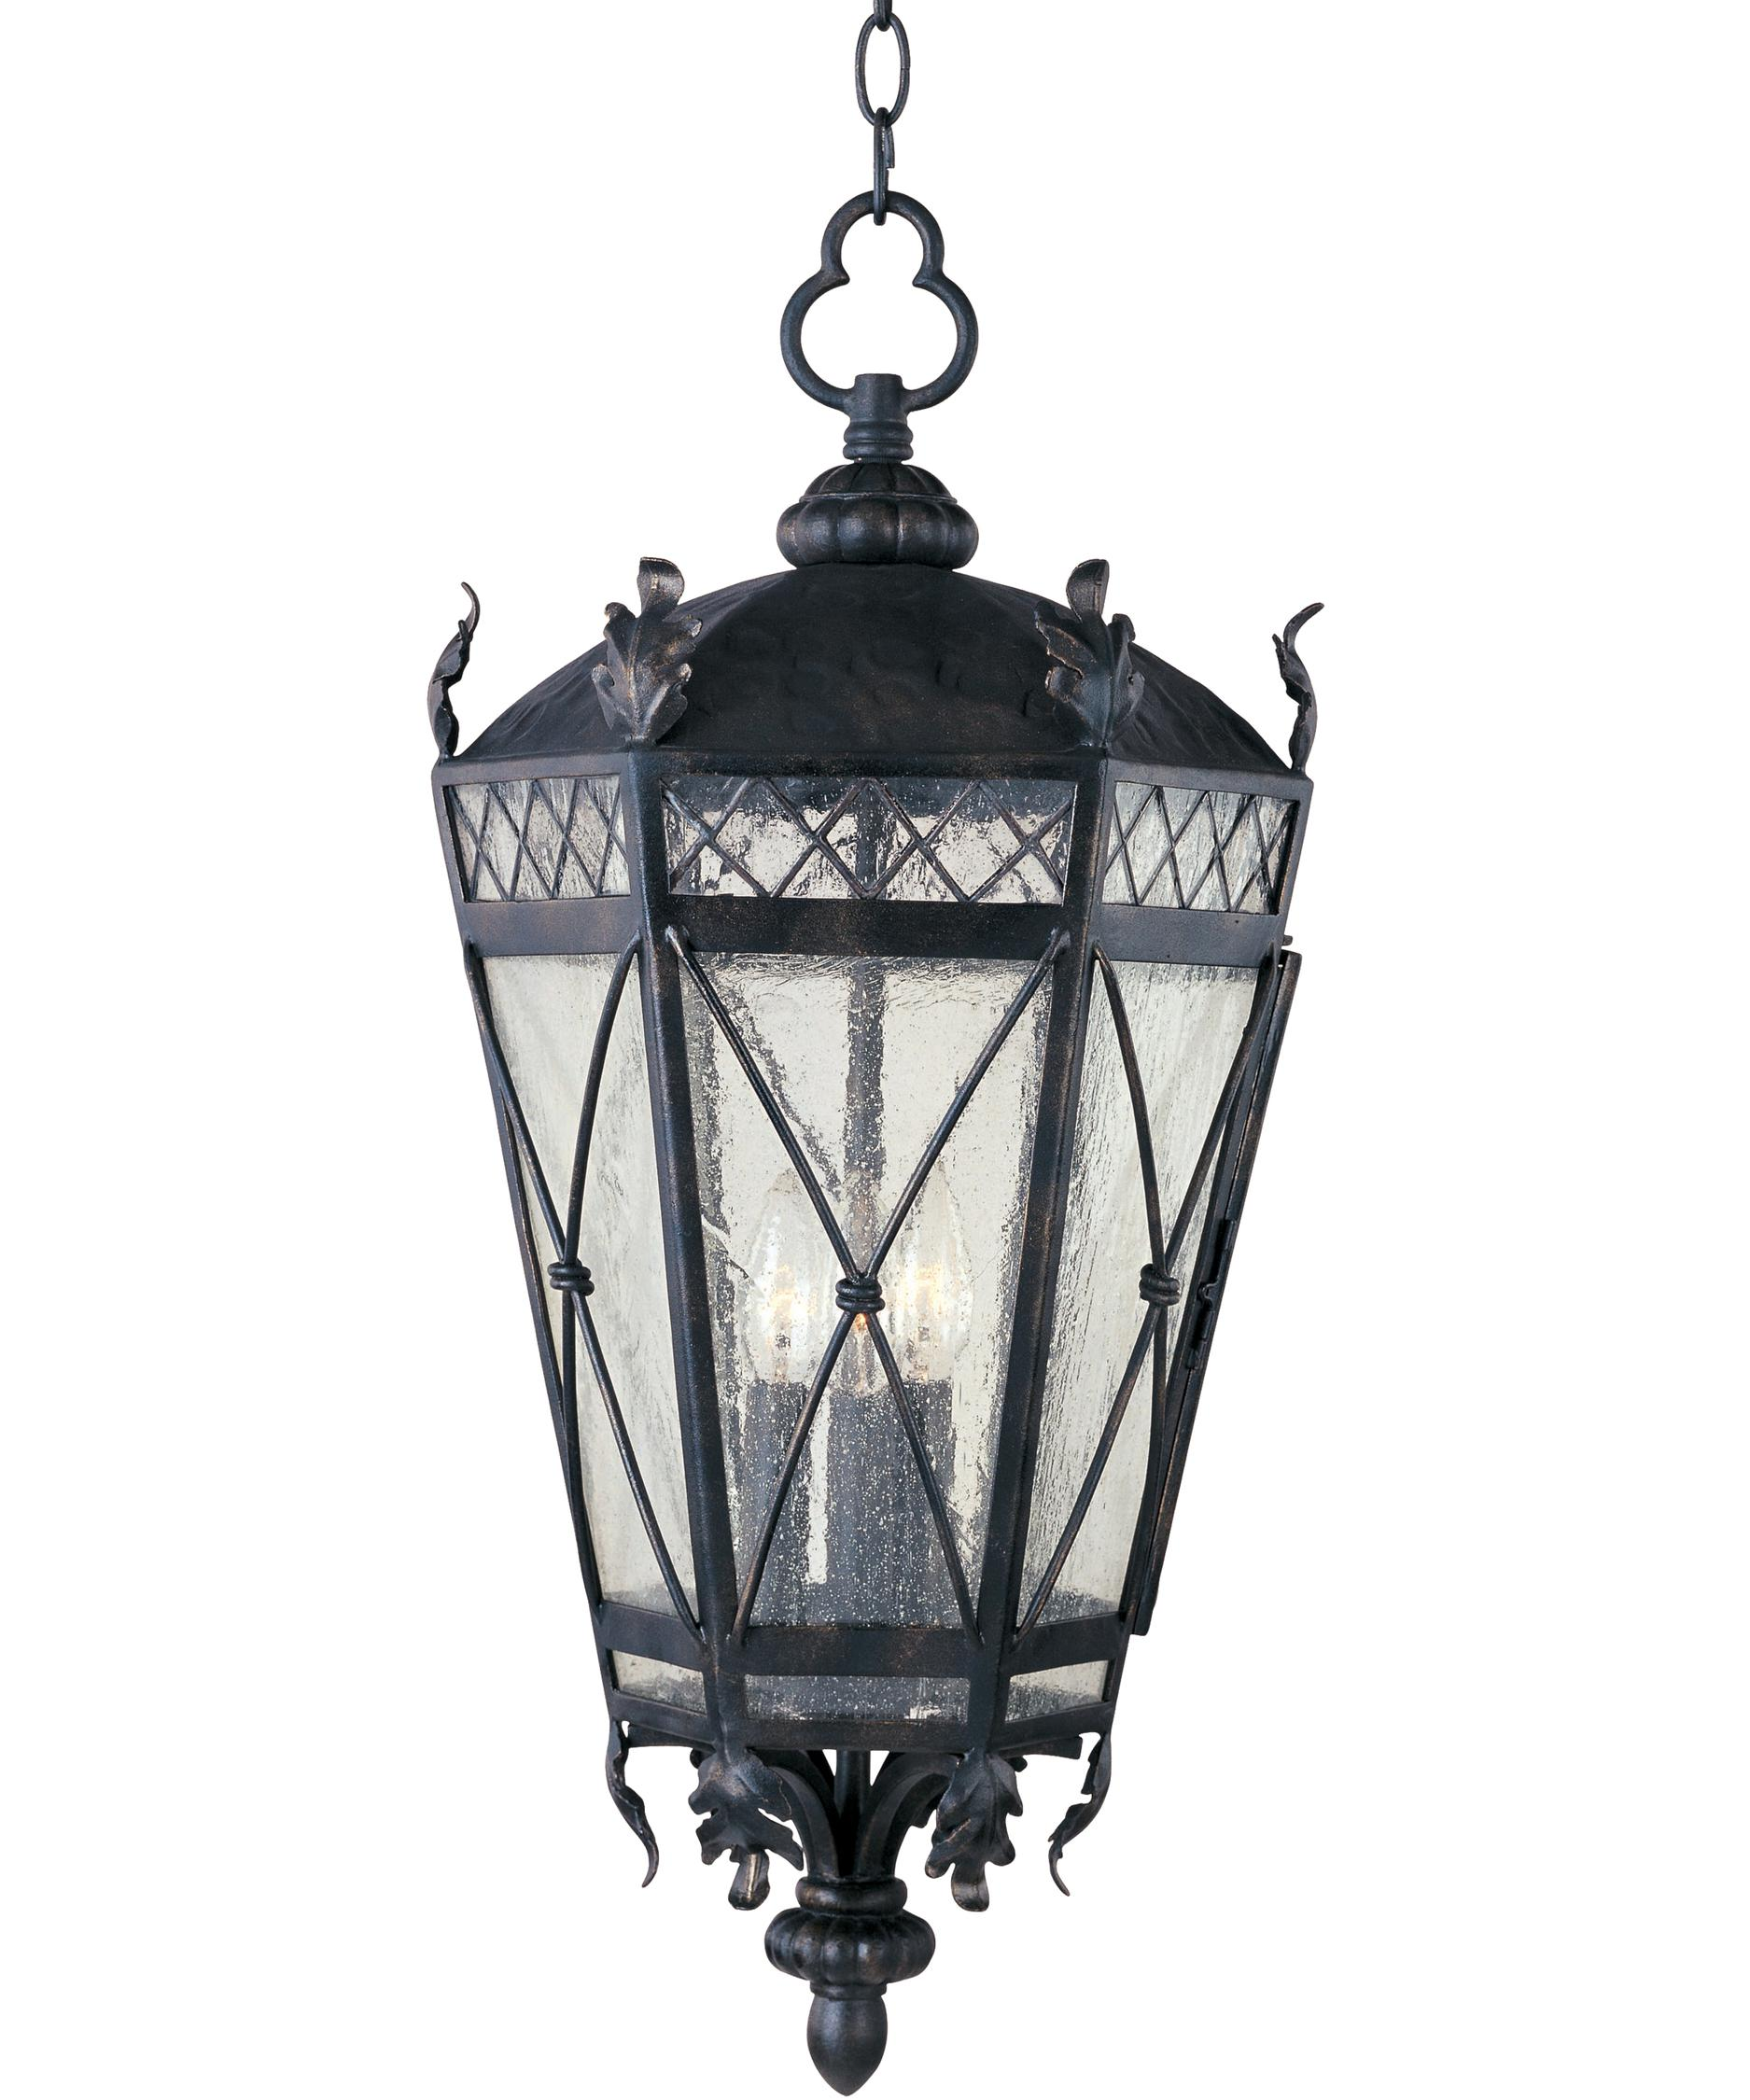 Outdoor hanging lamp - Shown In Artesian Bronze Finish And Seedy Glass